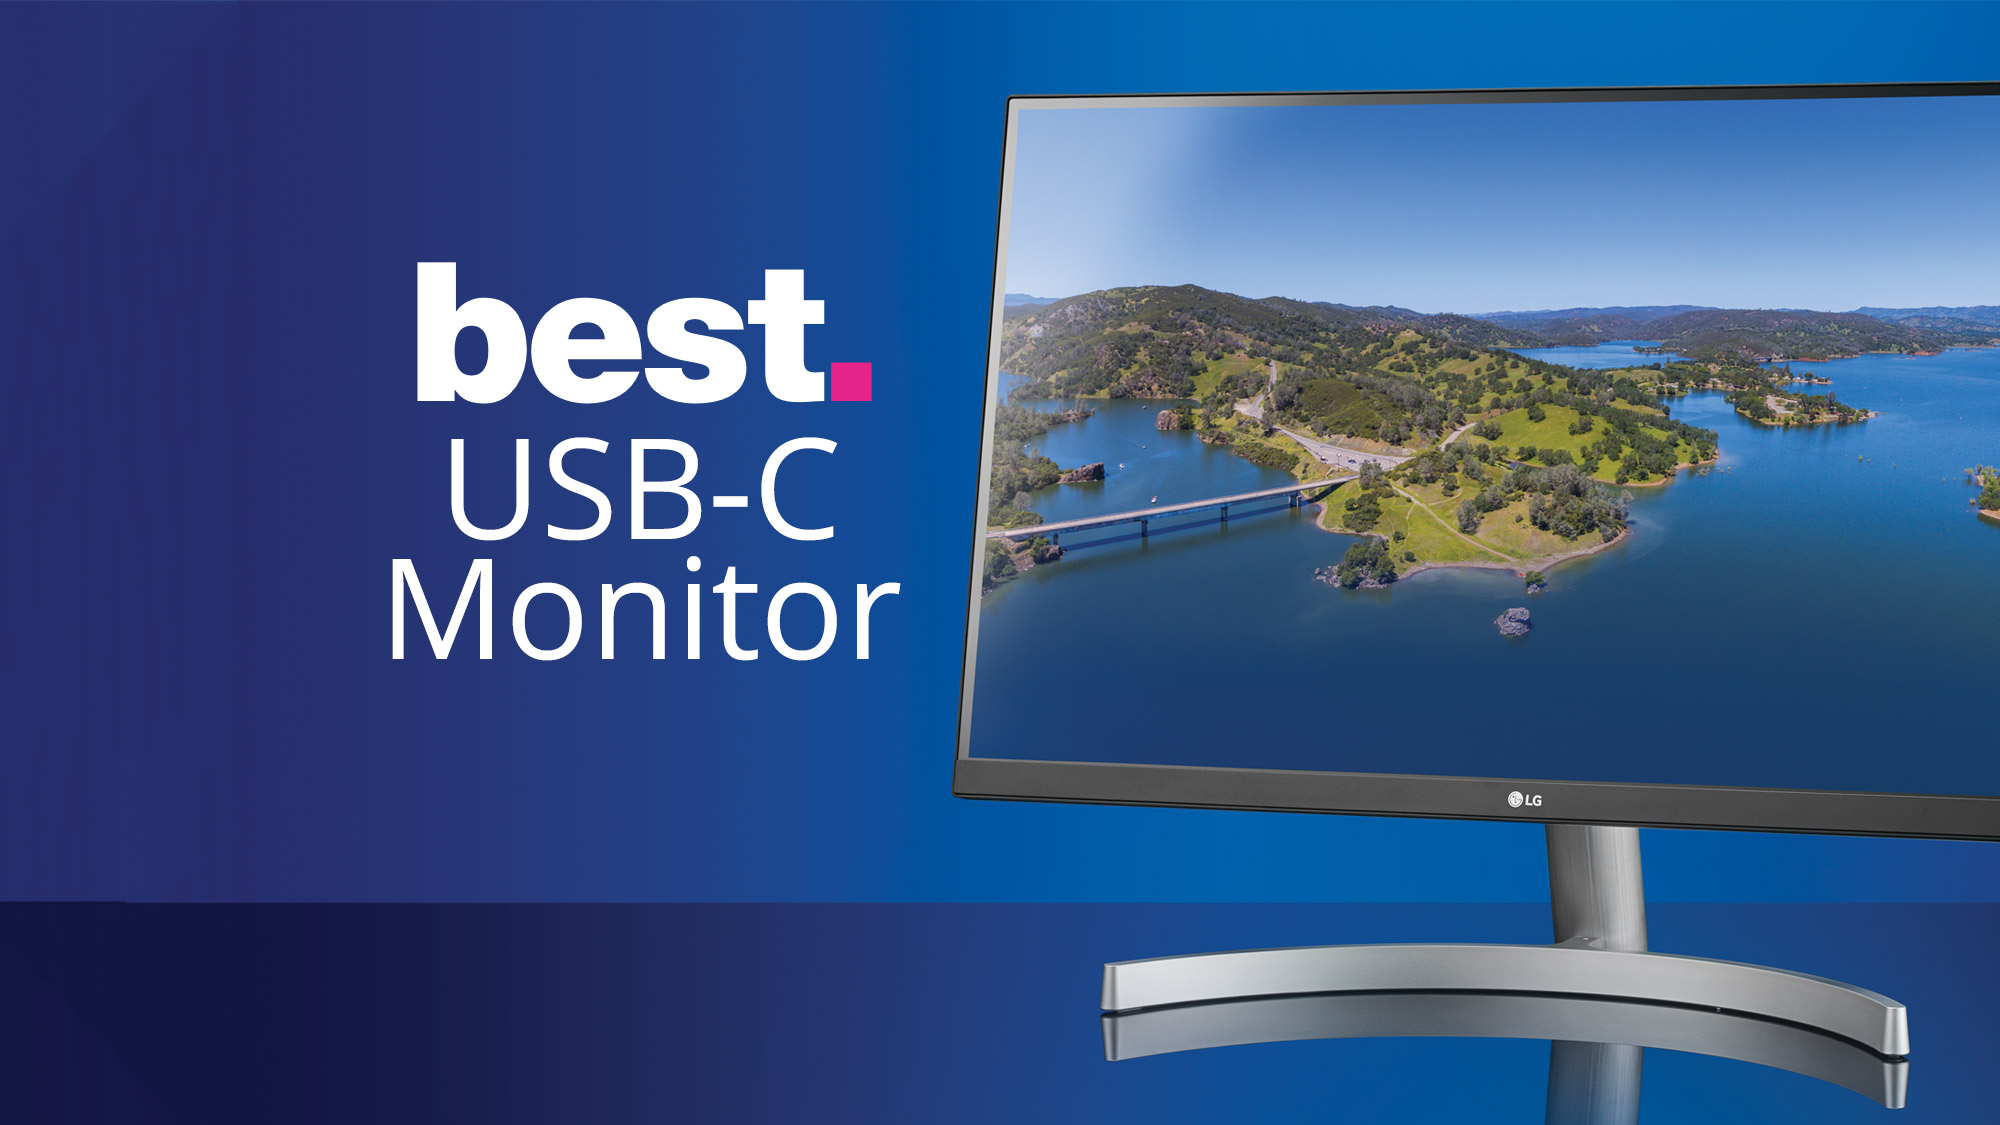 The best USB-C monitor for Macbook Pro and Windows laptops | TechRadar